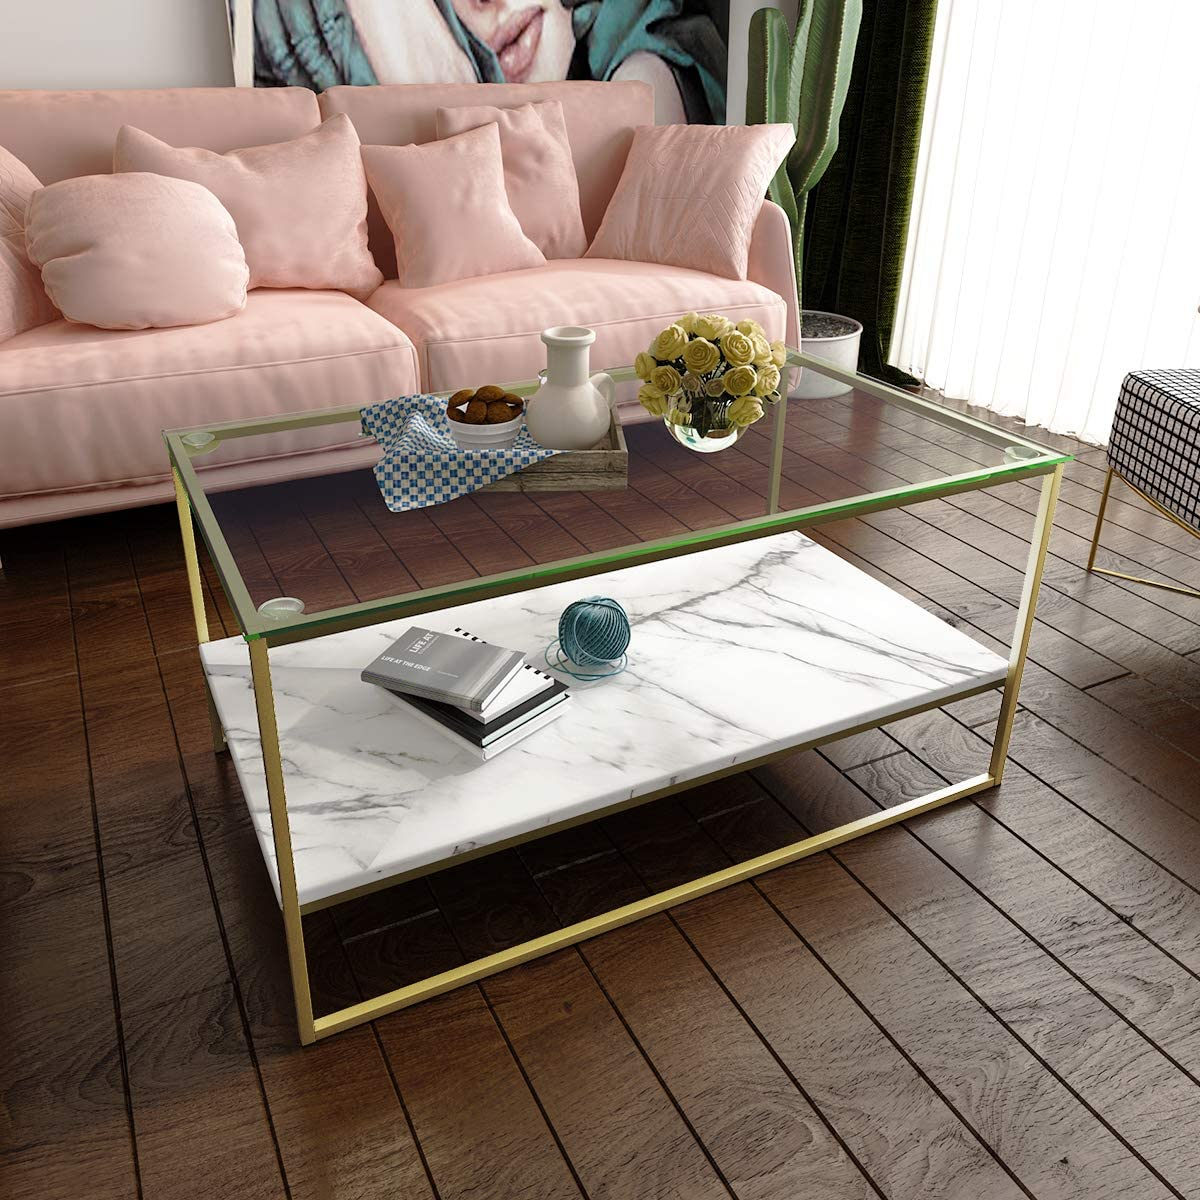 Amazon Com Tilly Lin Faux Marble Coffee Table Glass Top Coffee Table Cocktail Table With Gold Metal Legs Kitchen Dining